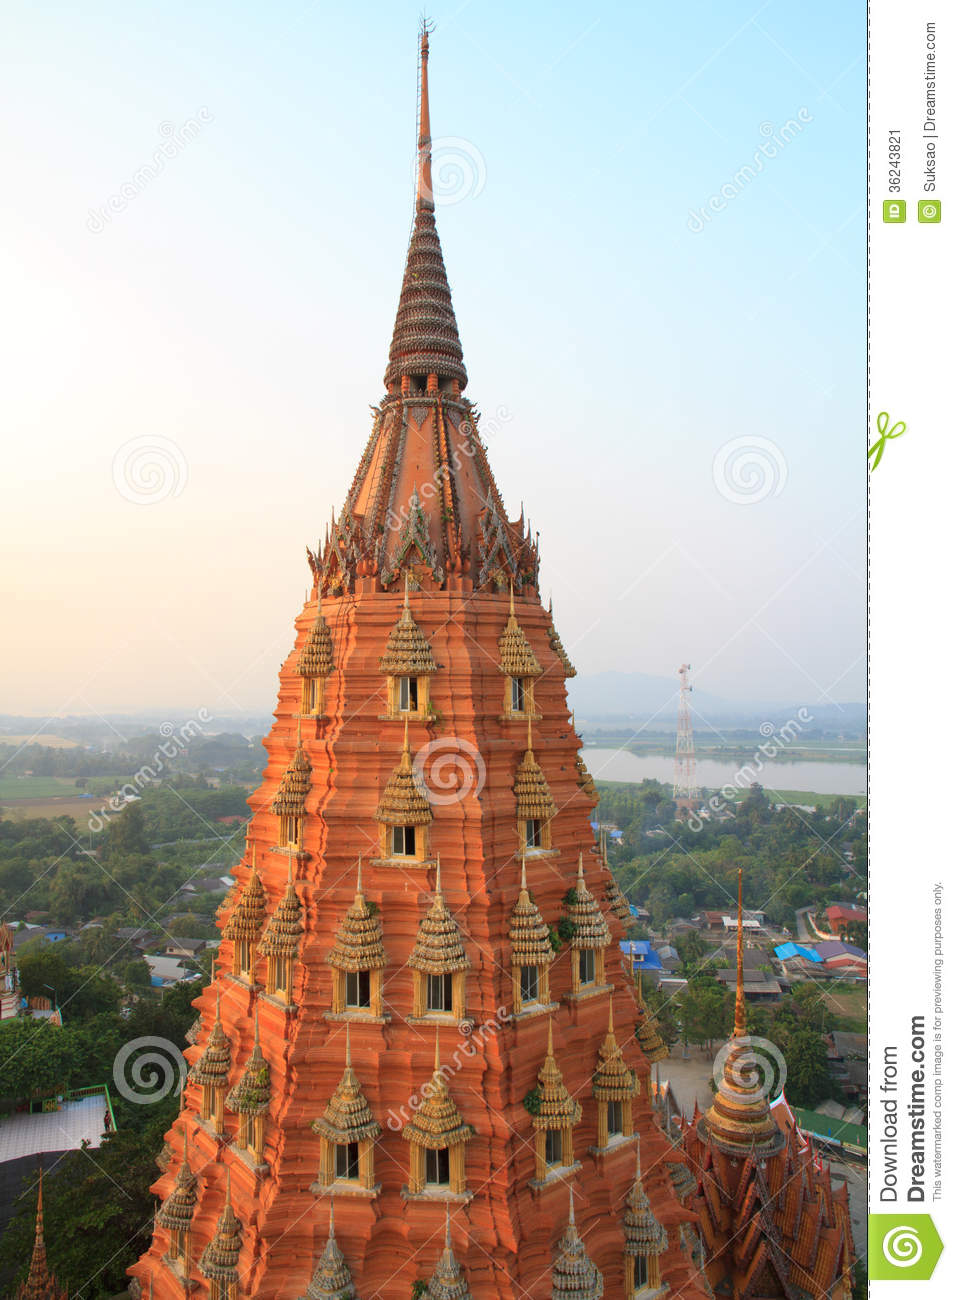 Uthai Thani Thailand  city images : Golden pagoda in temple, Uthai Thani Province, Thailand.